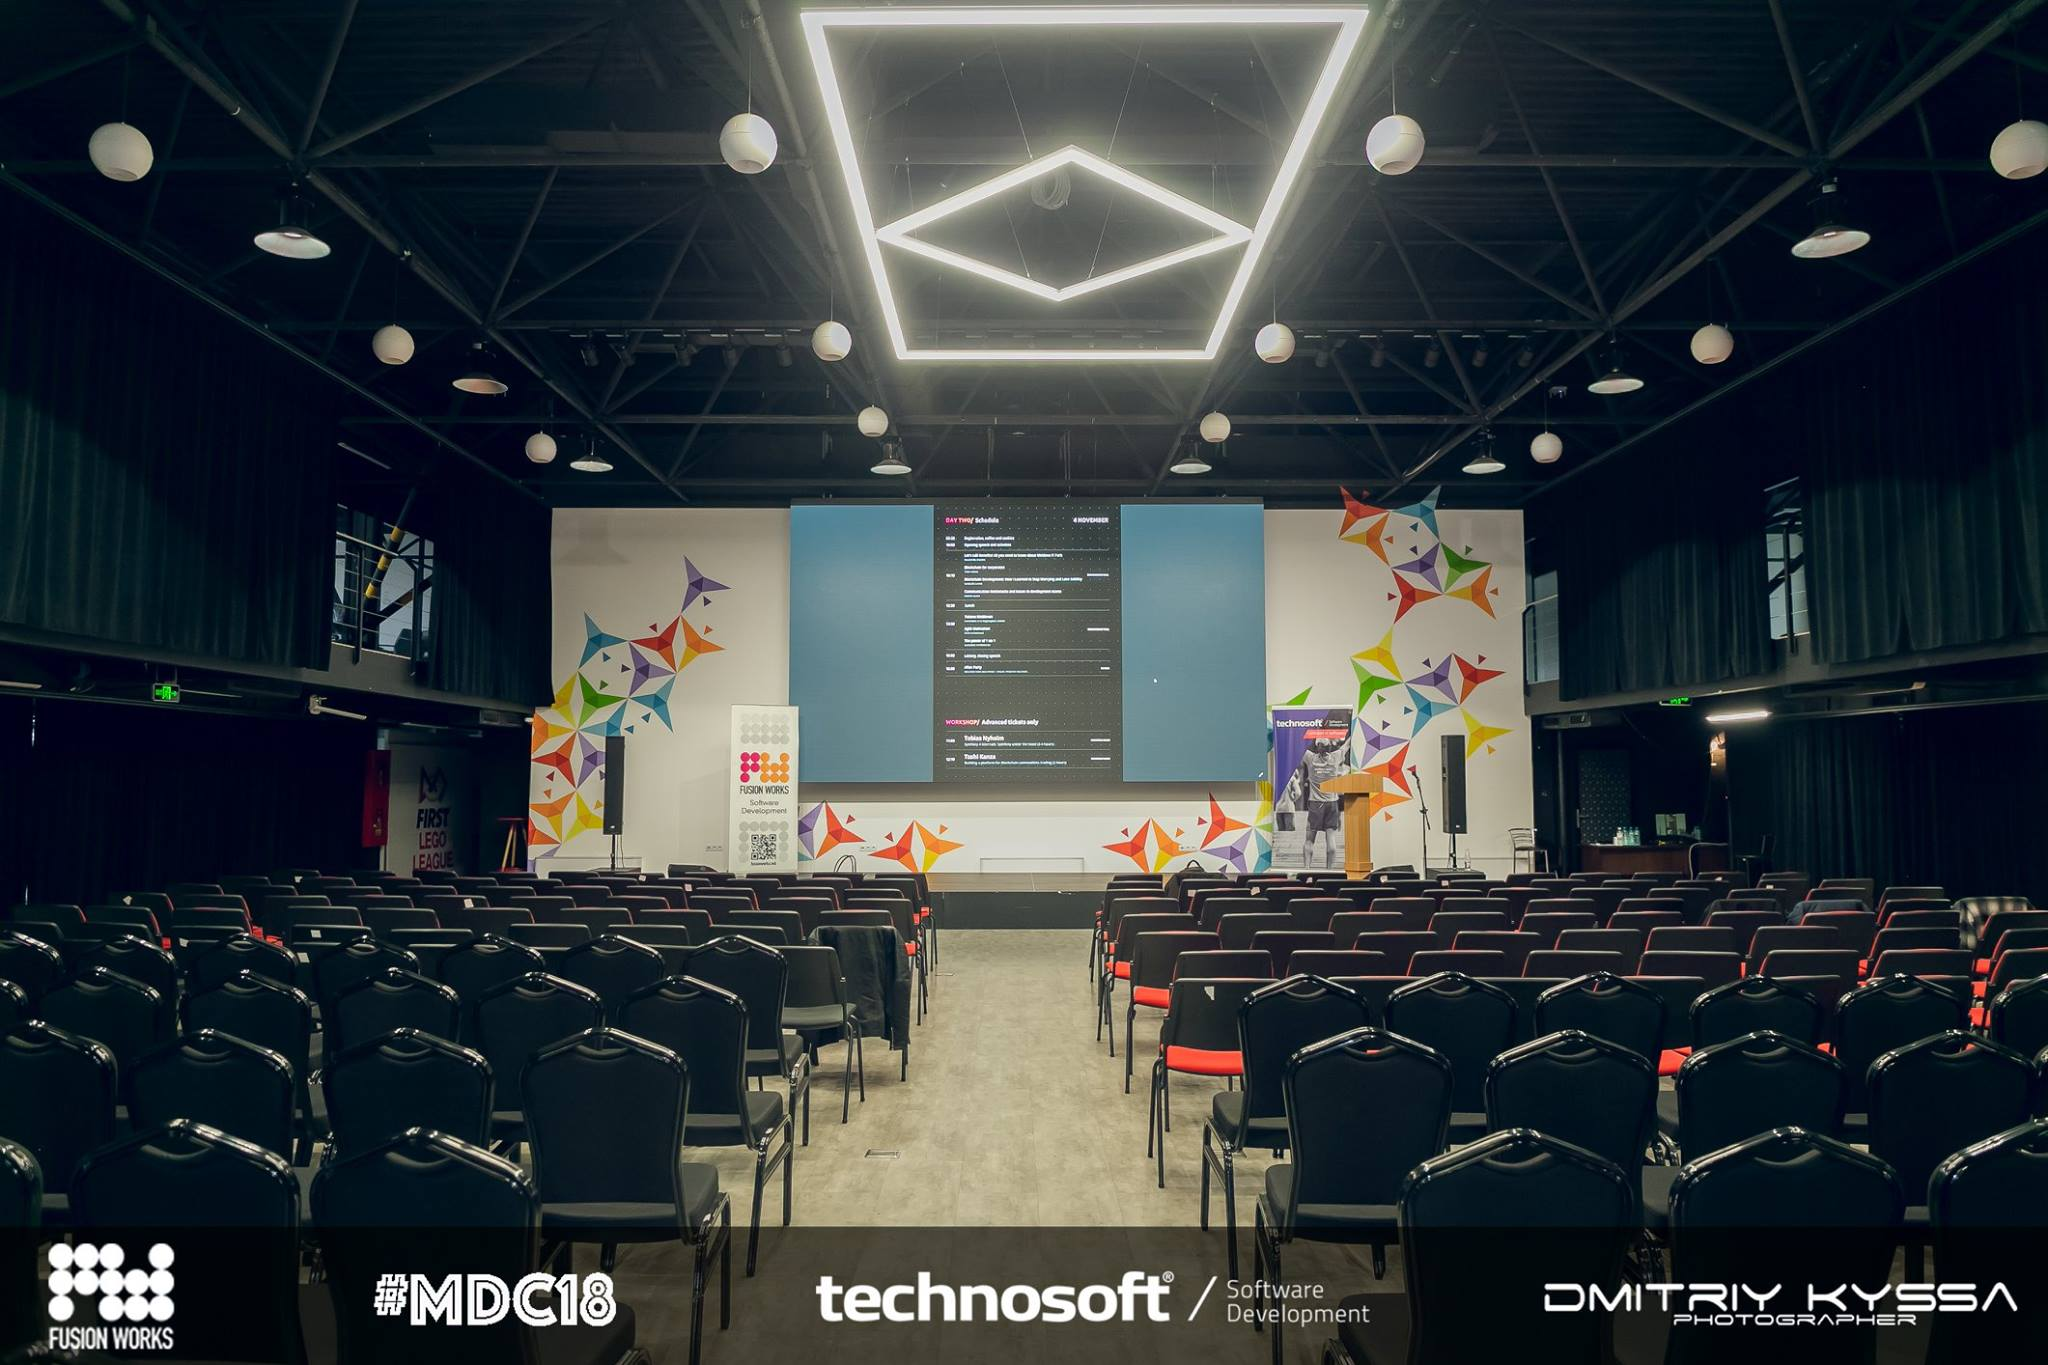 Moldova Developer Conference '18